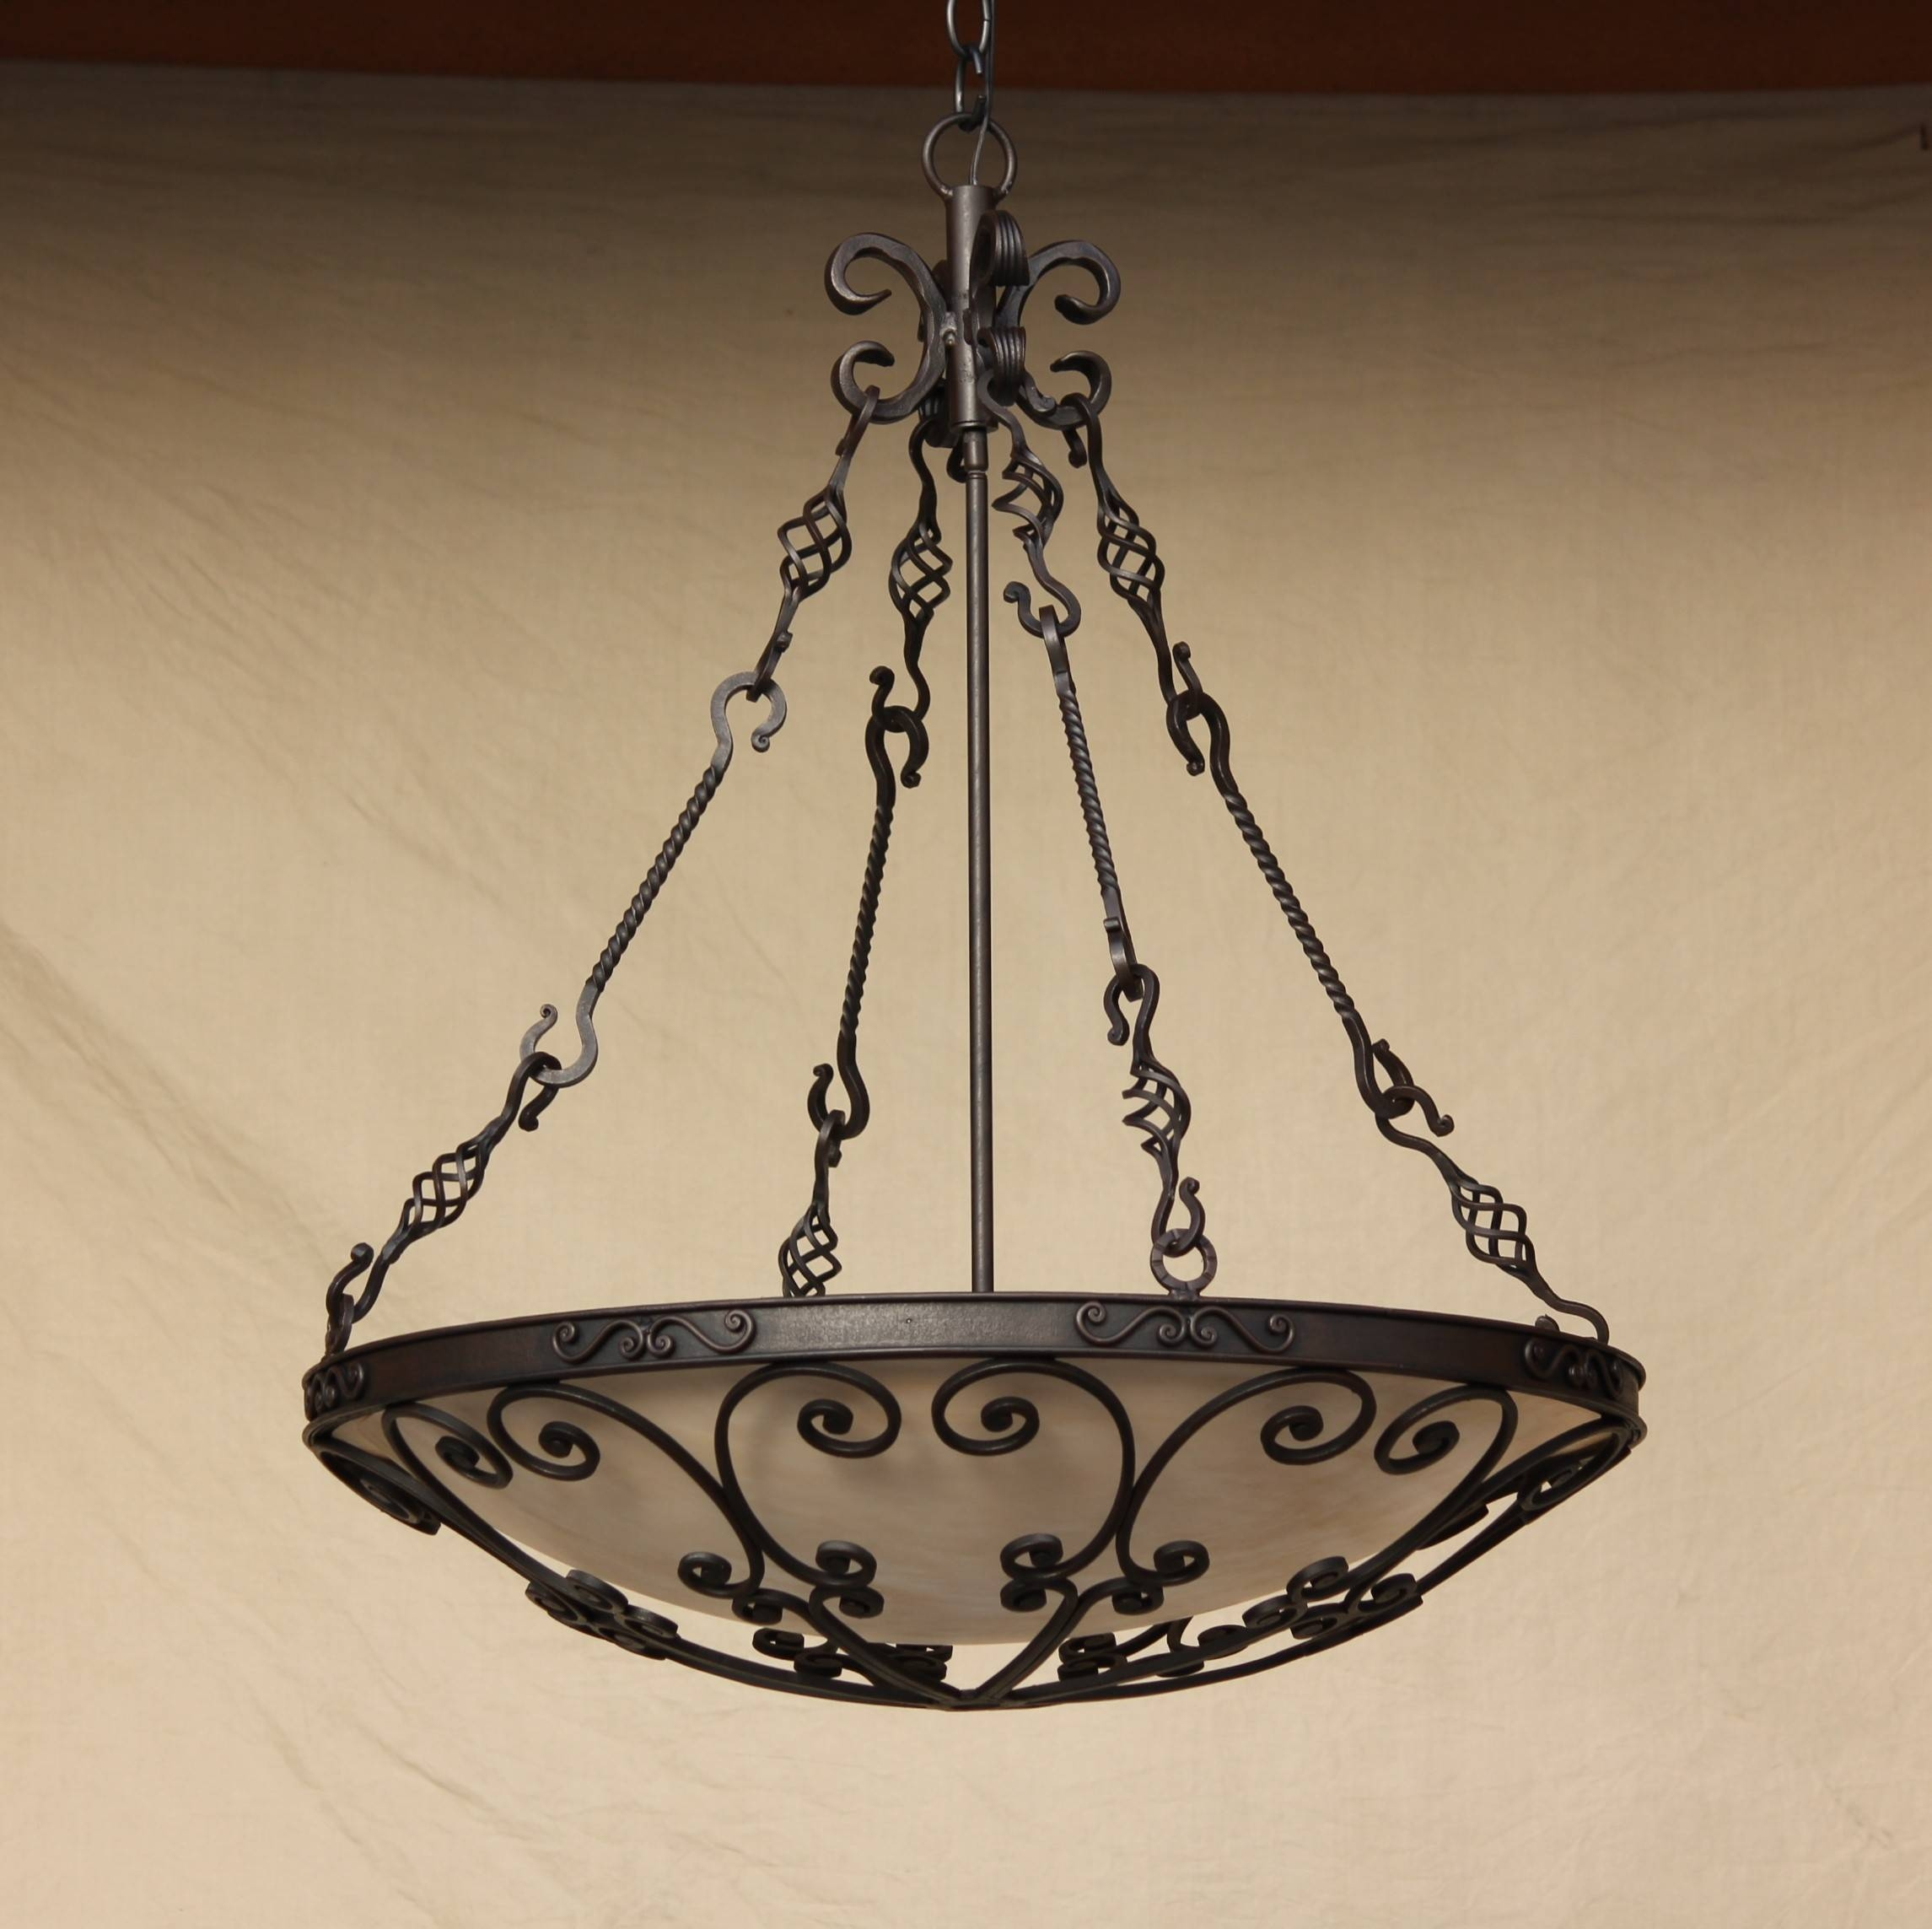 Wrought Iron Pendant Light - Baby-Exit intended for Wrought Iron Lights Pendants (Image 14 of 15)